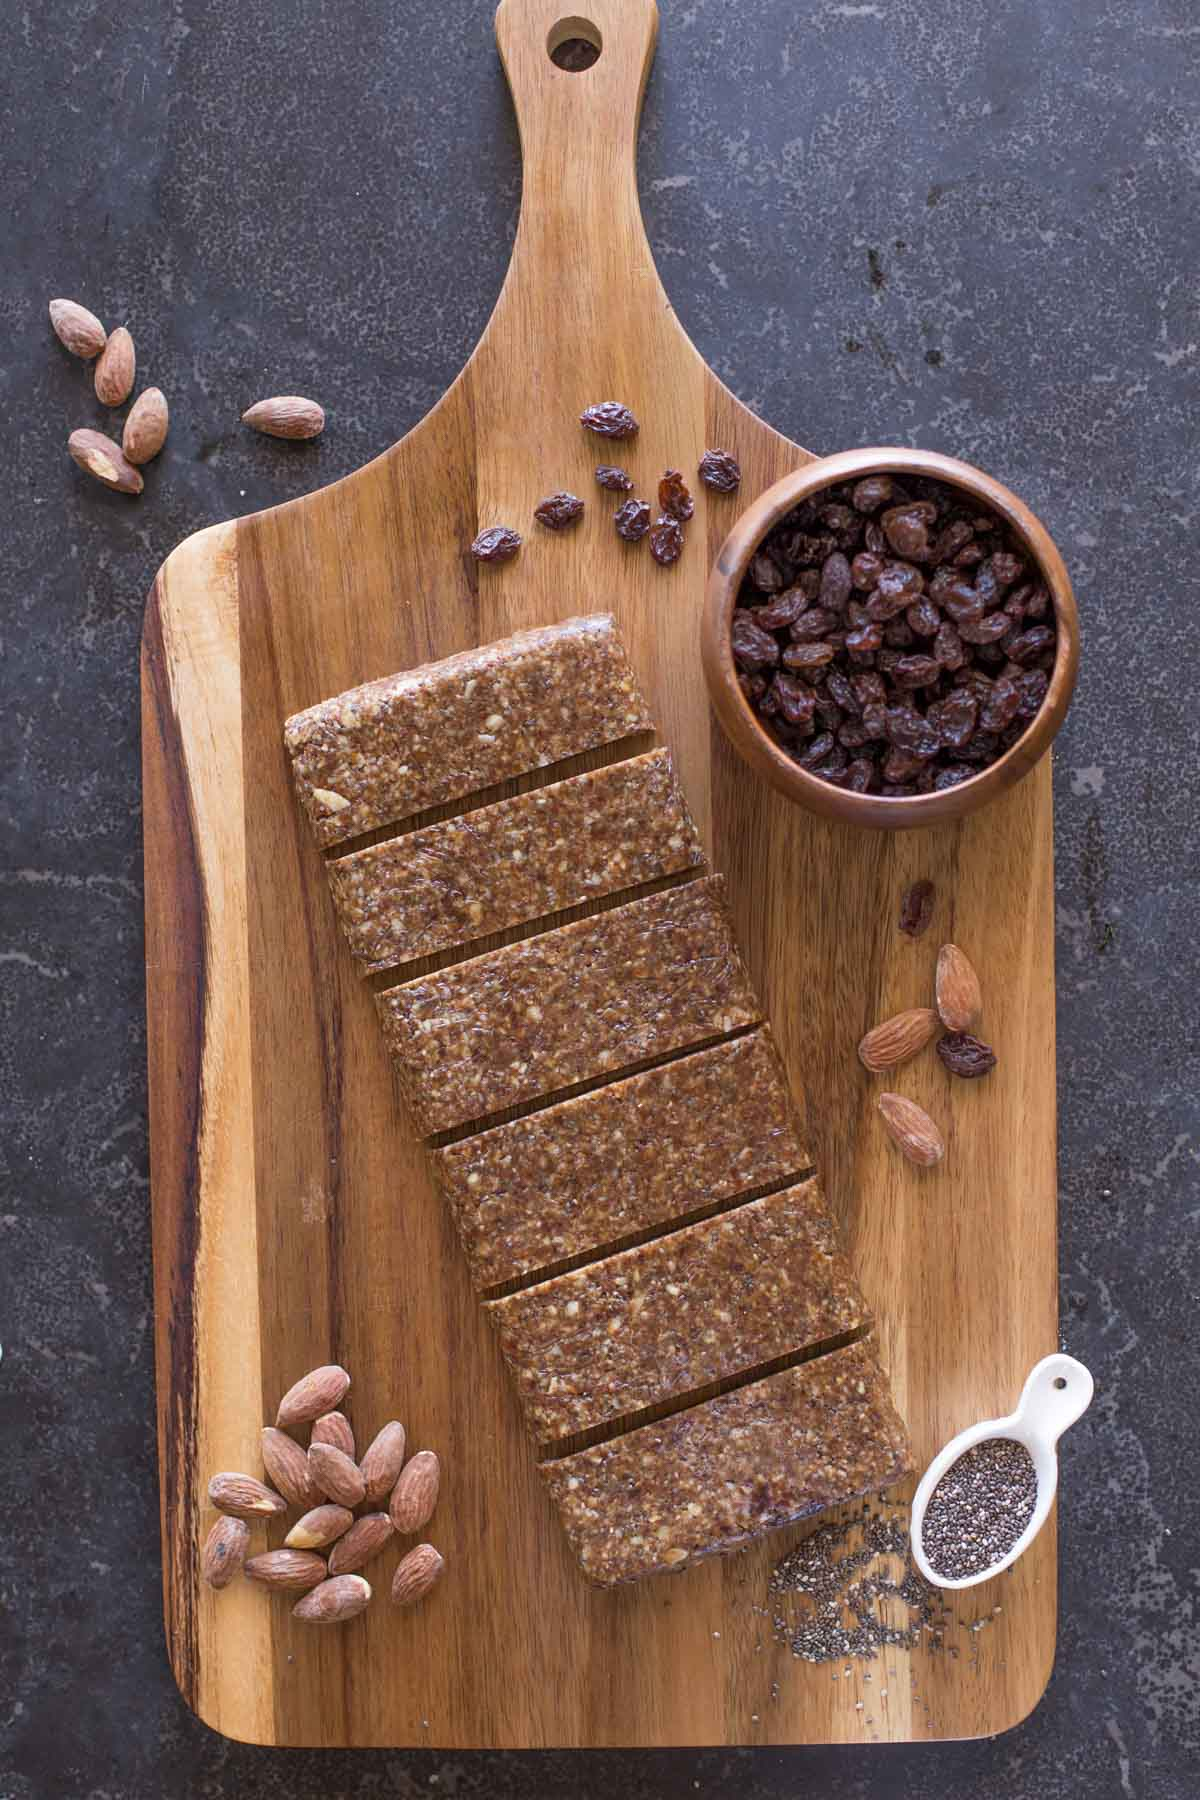 Five Ingredient No Bake Energy Bars on a cutting board, along with almonds, a small bowl of raisins and a spoon full of chia seeds.